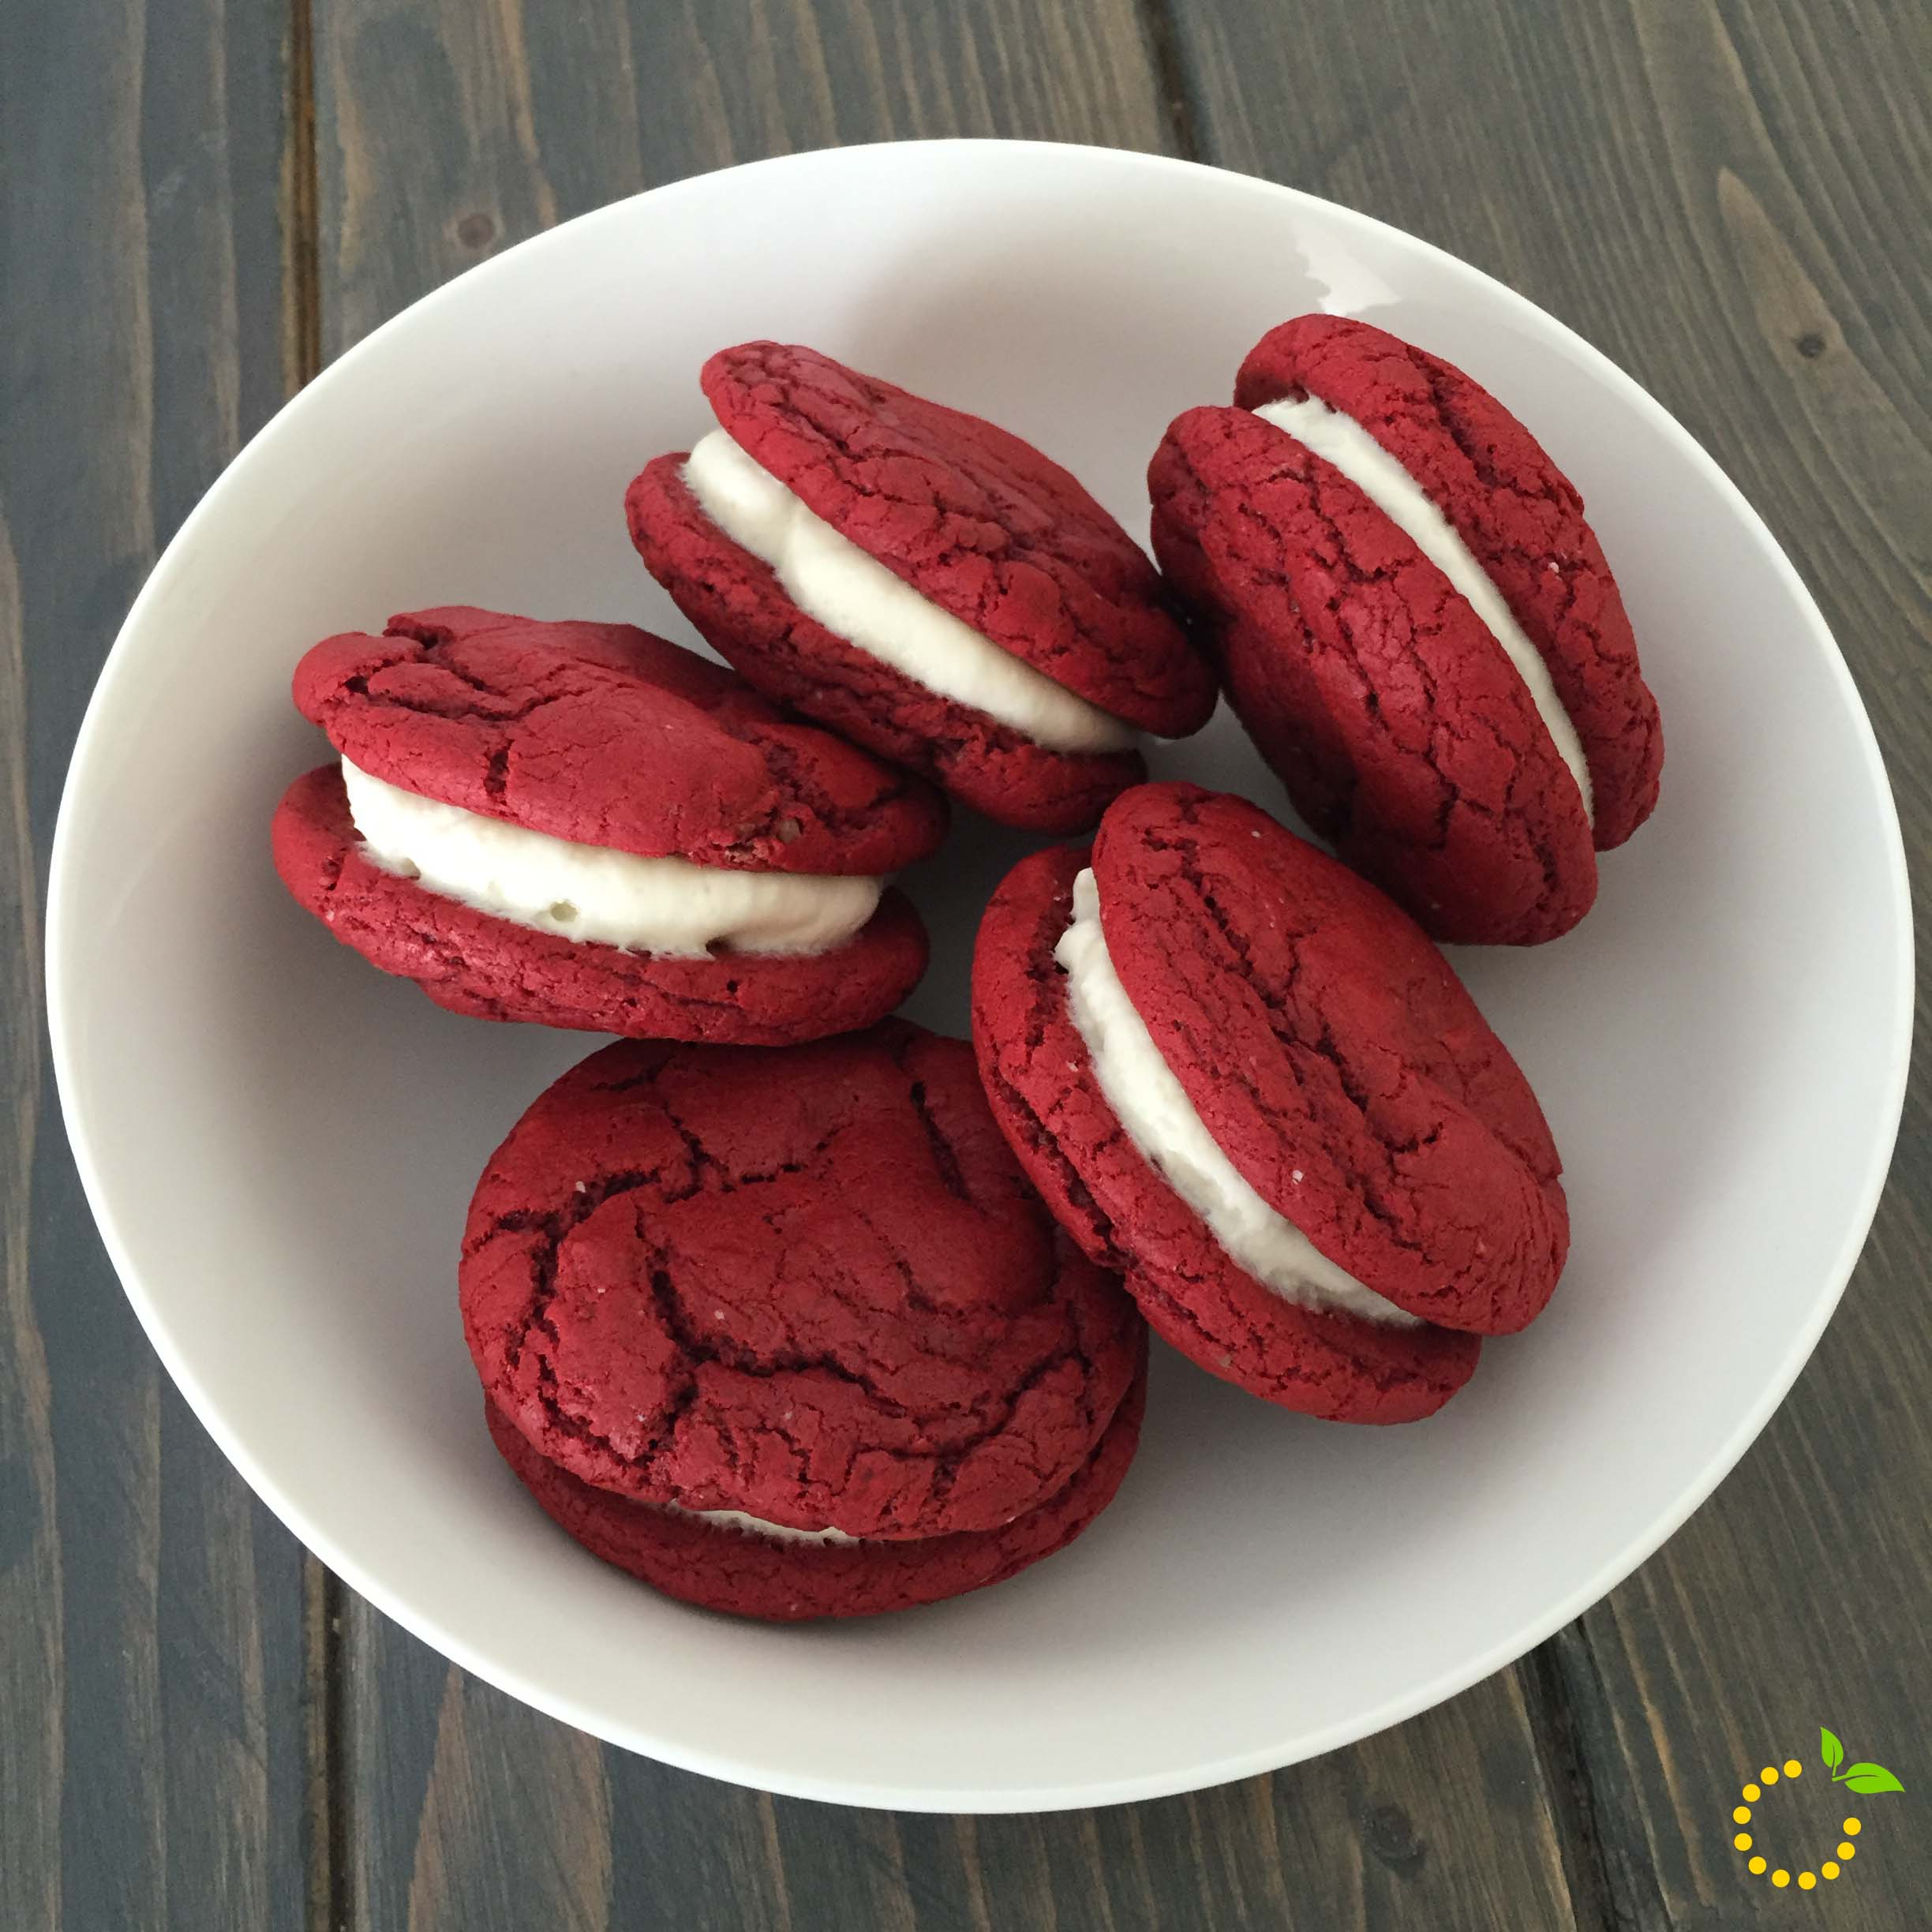 How to Make Red Velvet Sandwich Cookies